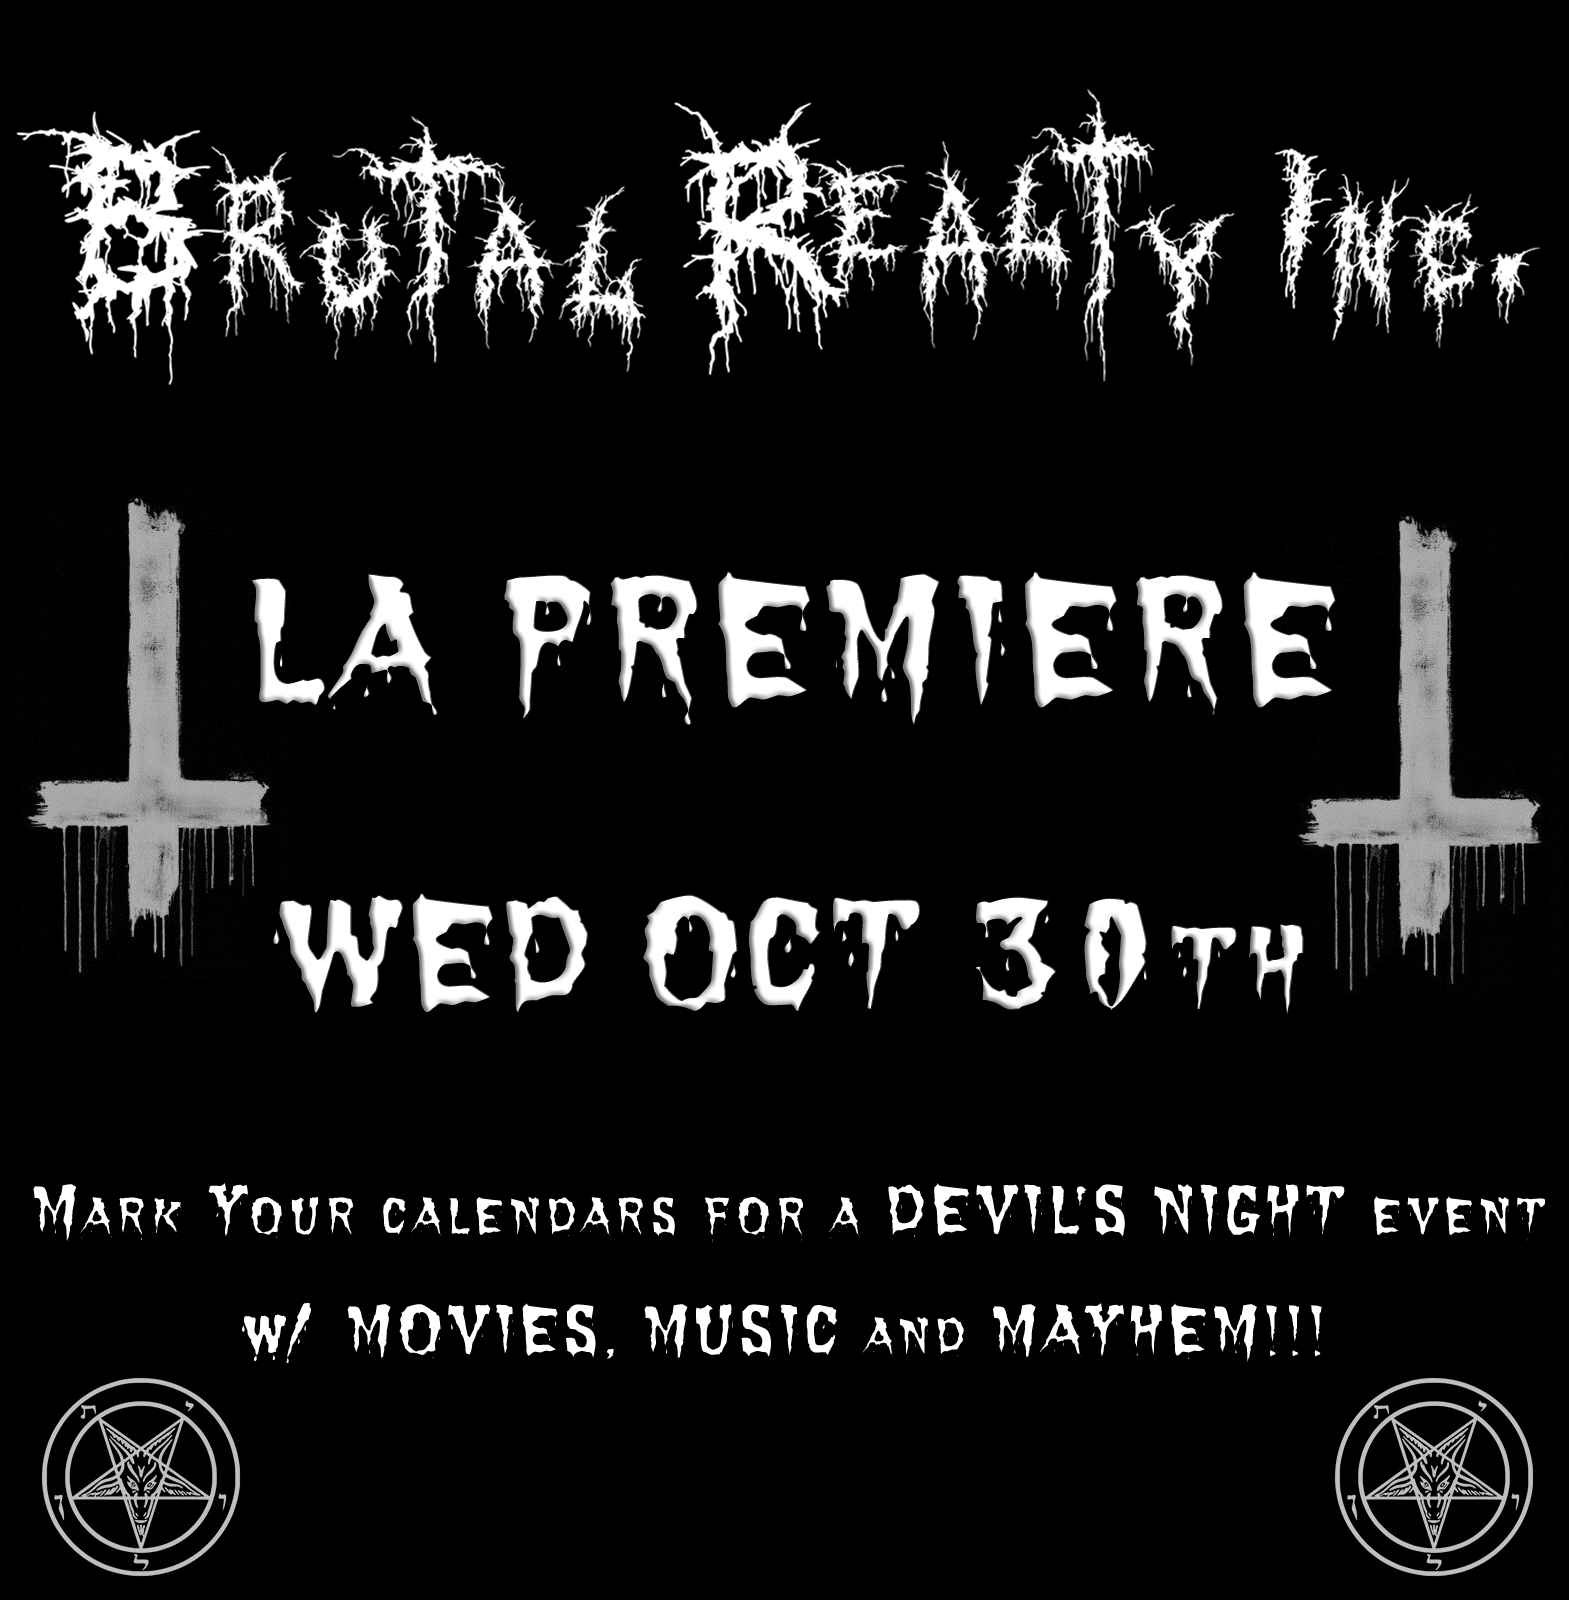 SAVE THE DATE! I will be on screen & on stage 10/30/19 for A DEVIL'S NIGHT EXTRAVAGANZA IN LOS ANGELES!   Movies+Music+Mayhem Details & Ticket info soon!